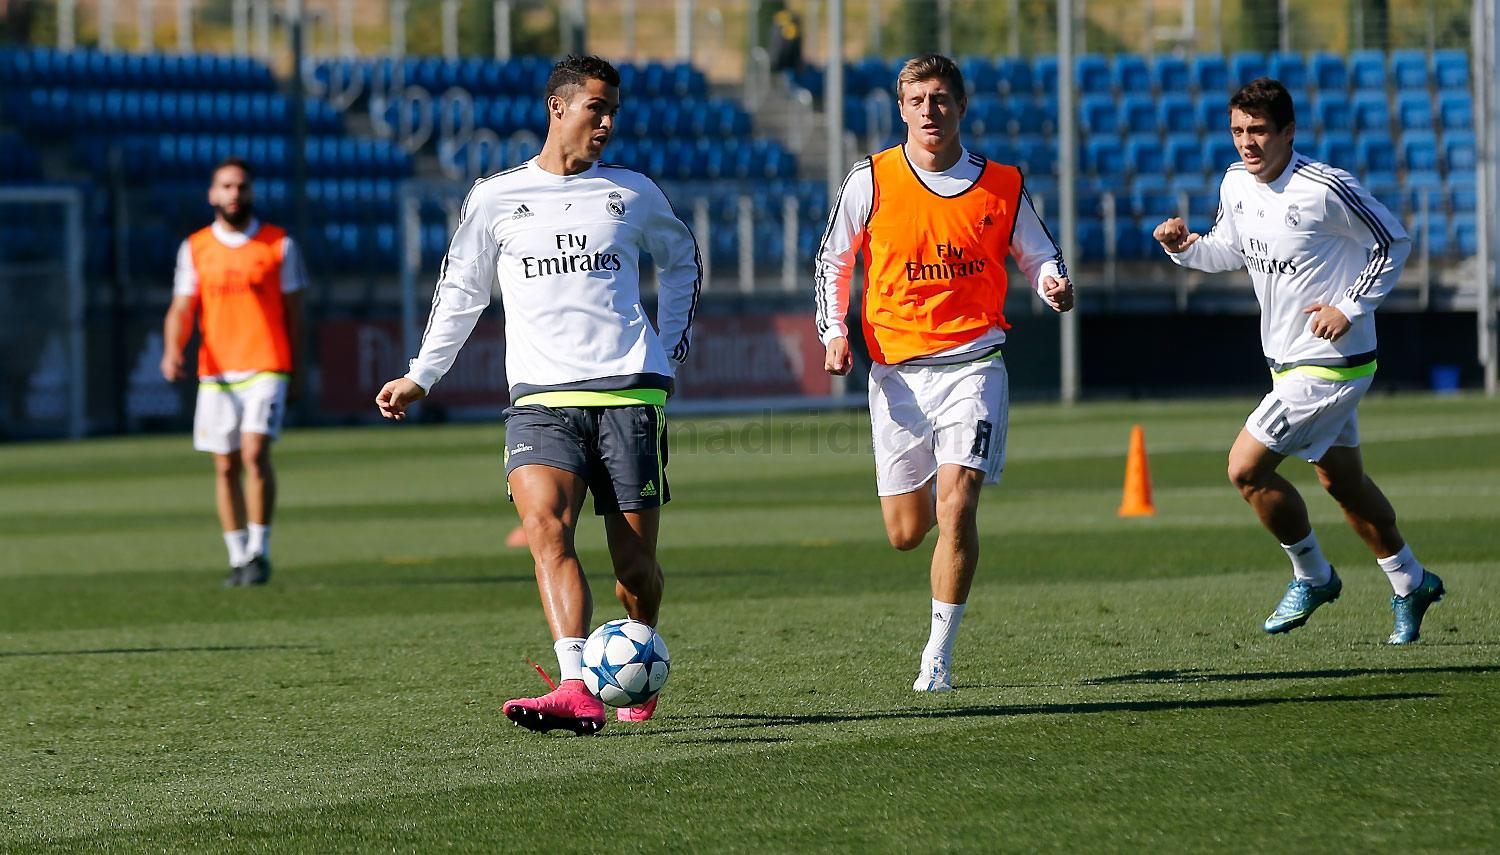 Real Madrid - Entrenamiento del Real Madrid - 28-09-2015